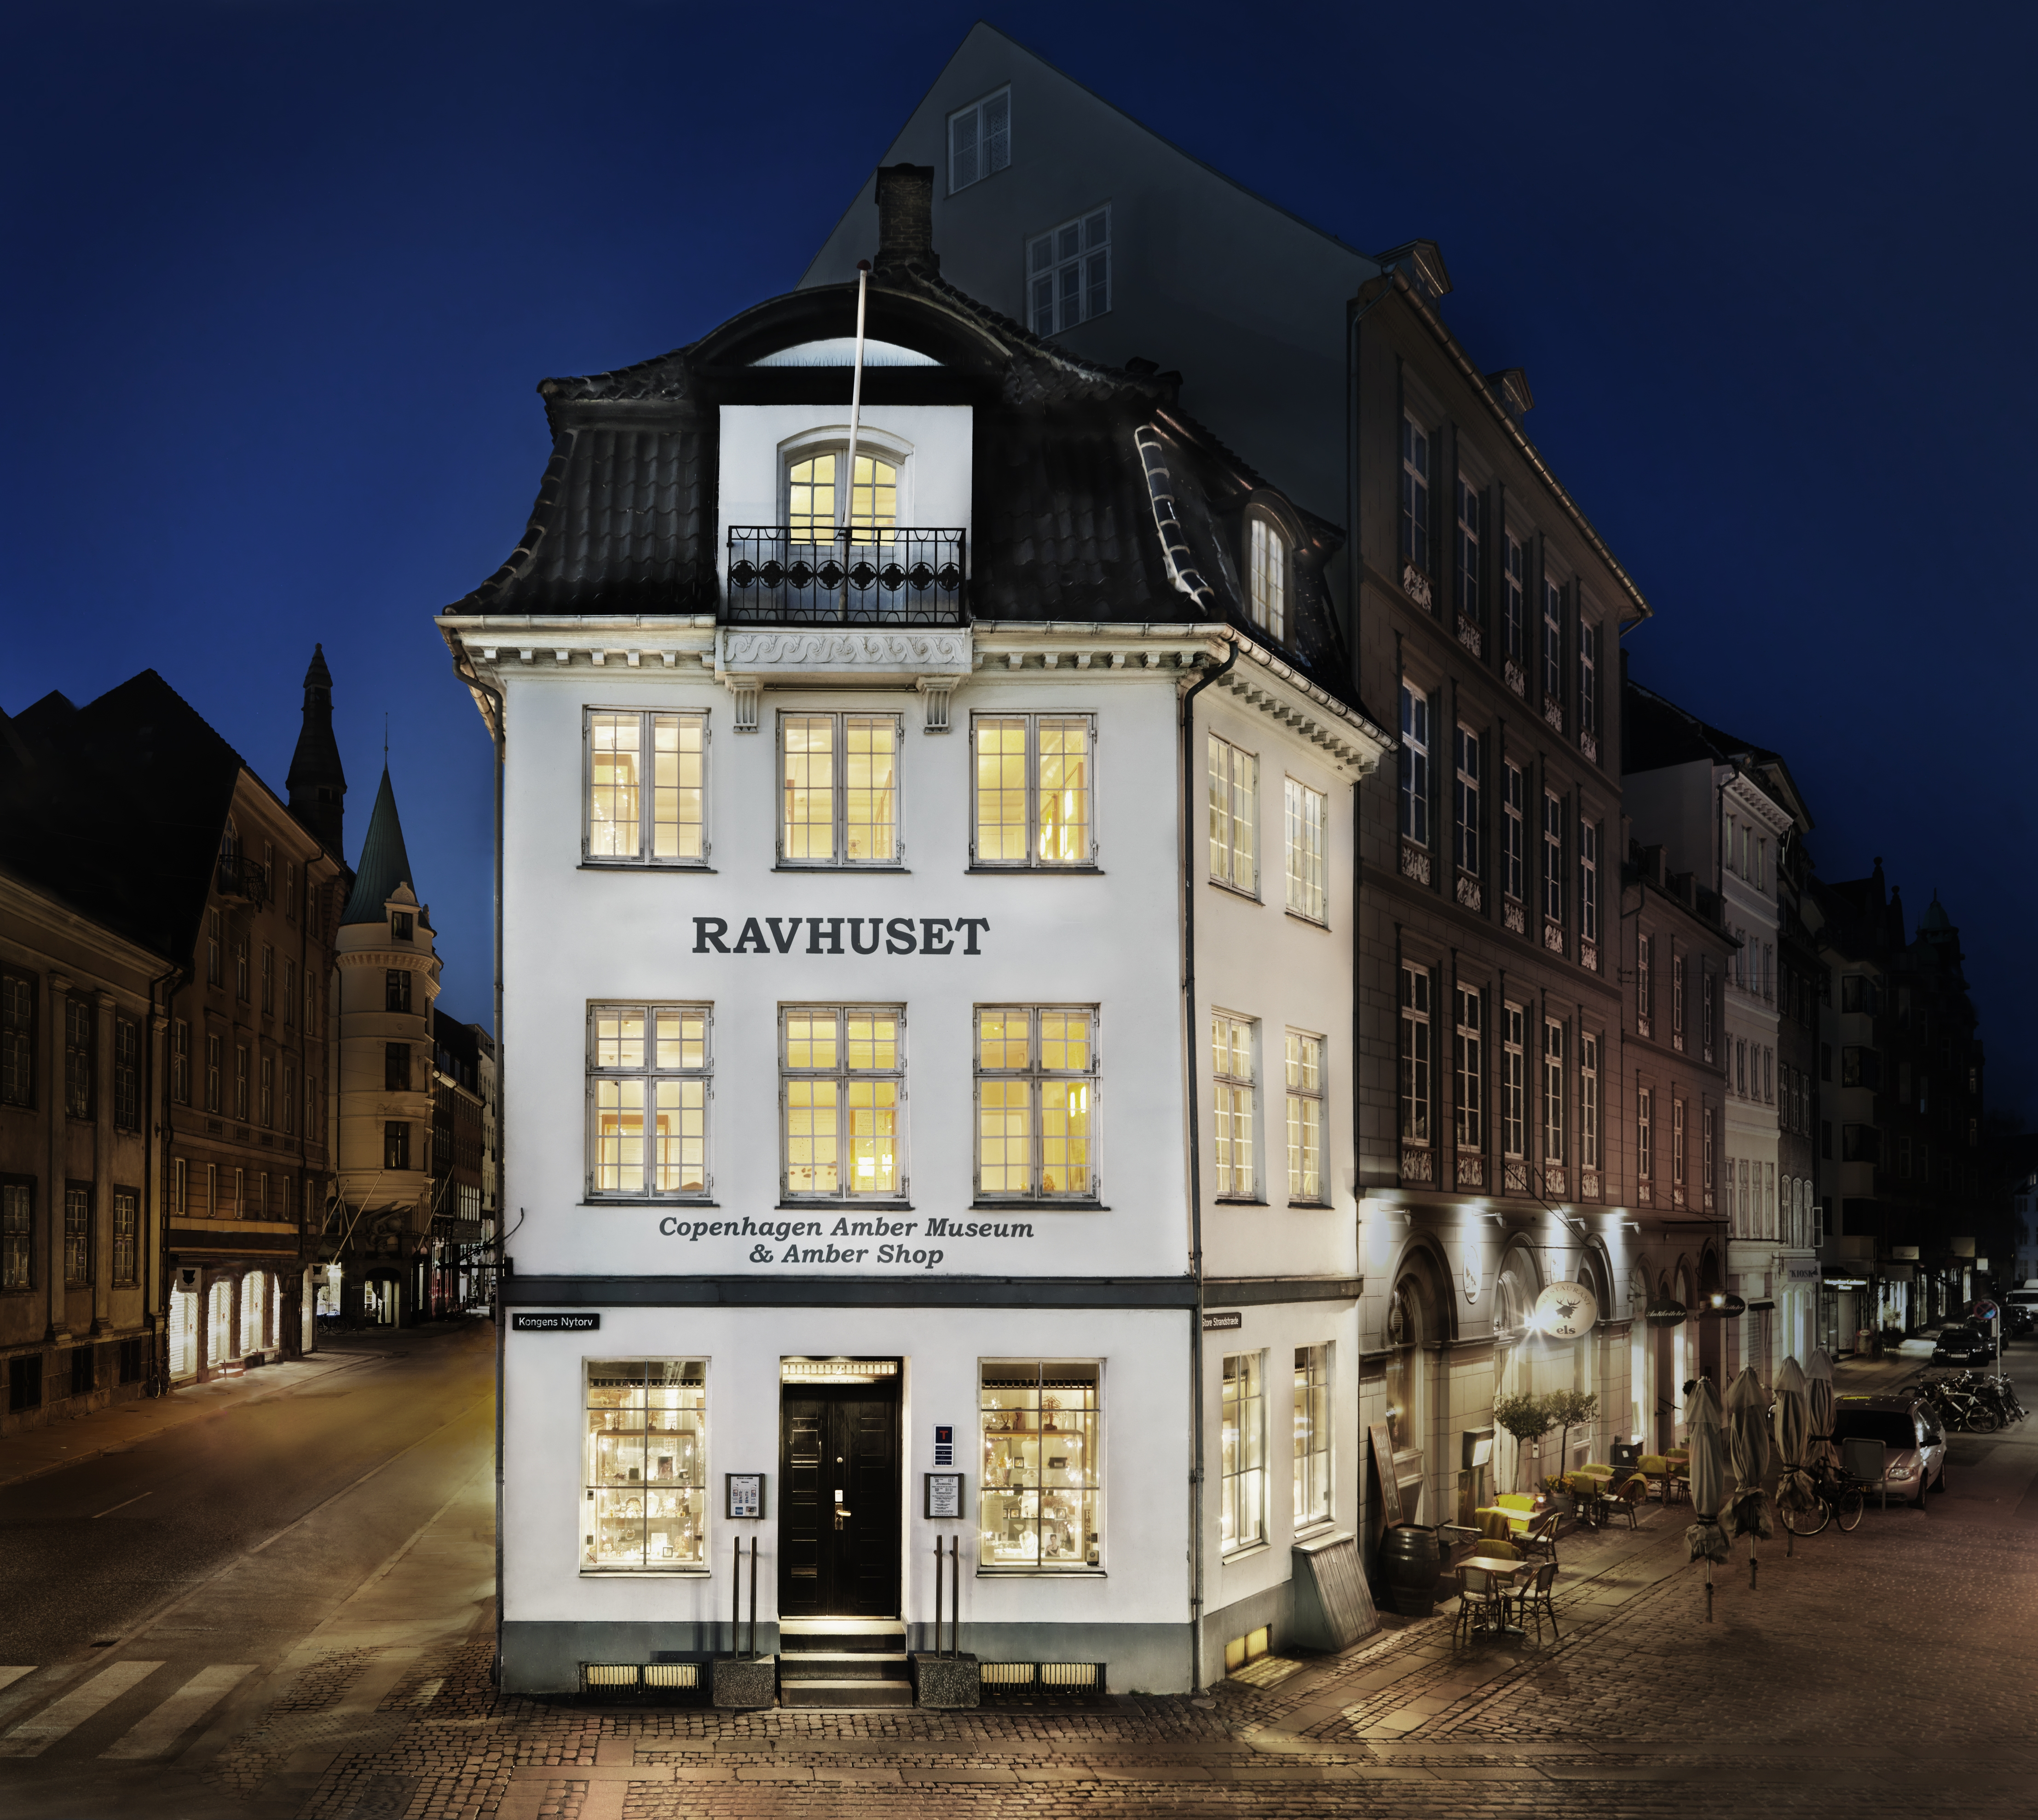 New openings hours at Kongens Nytorv